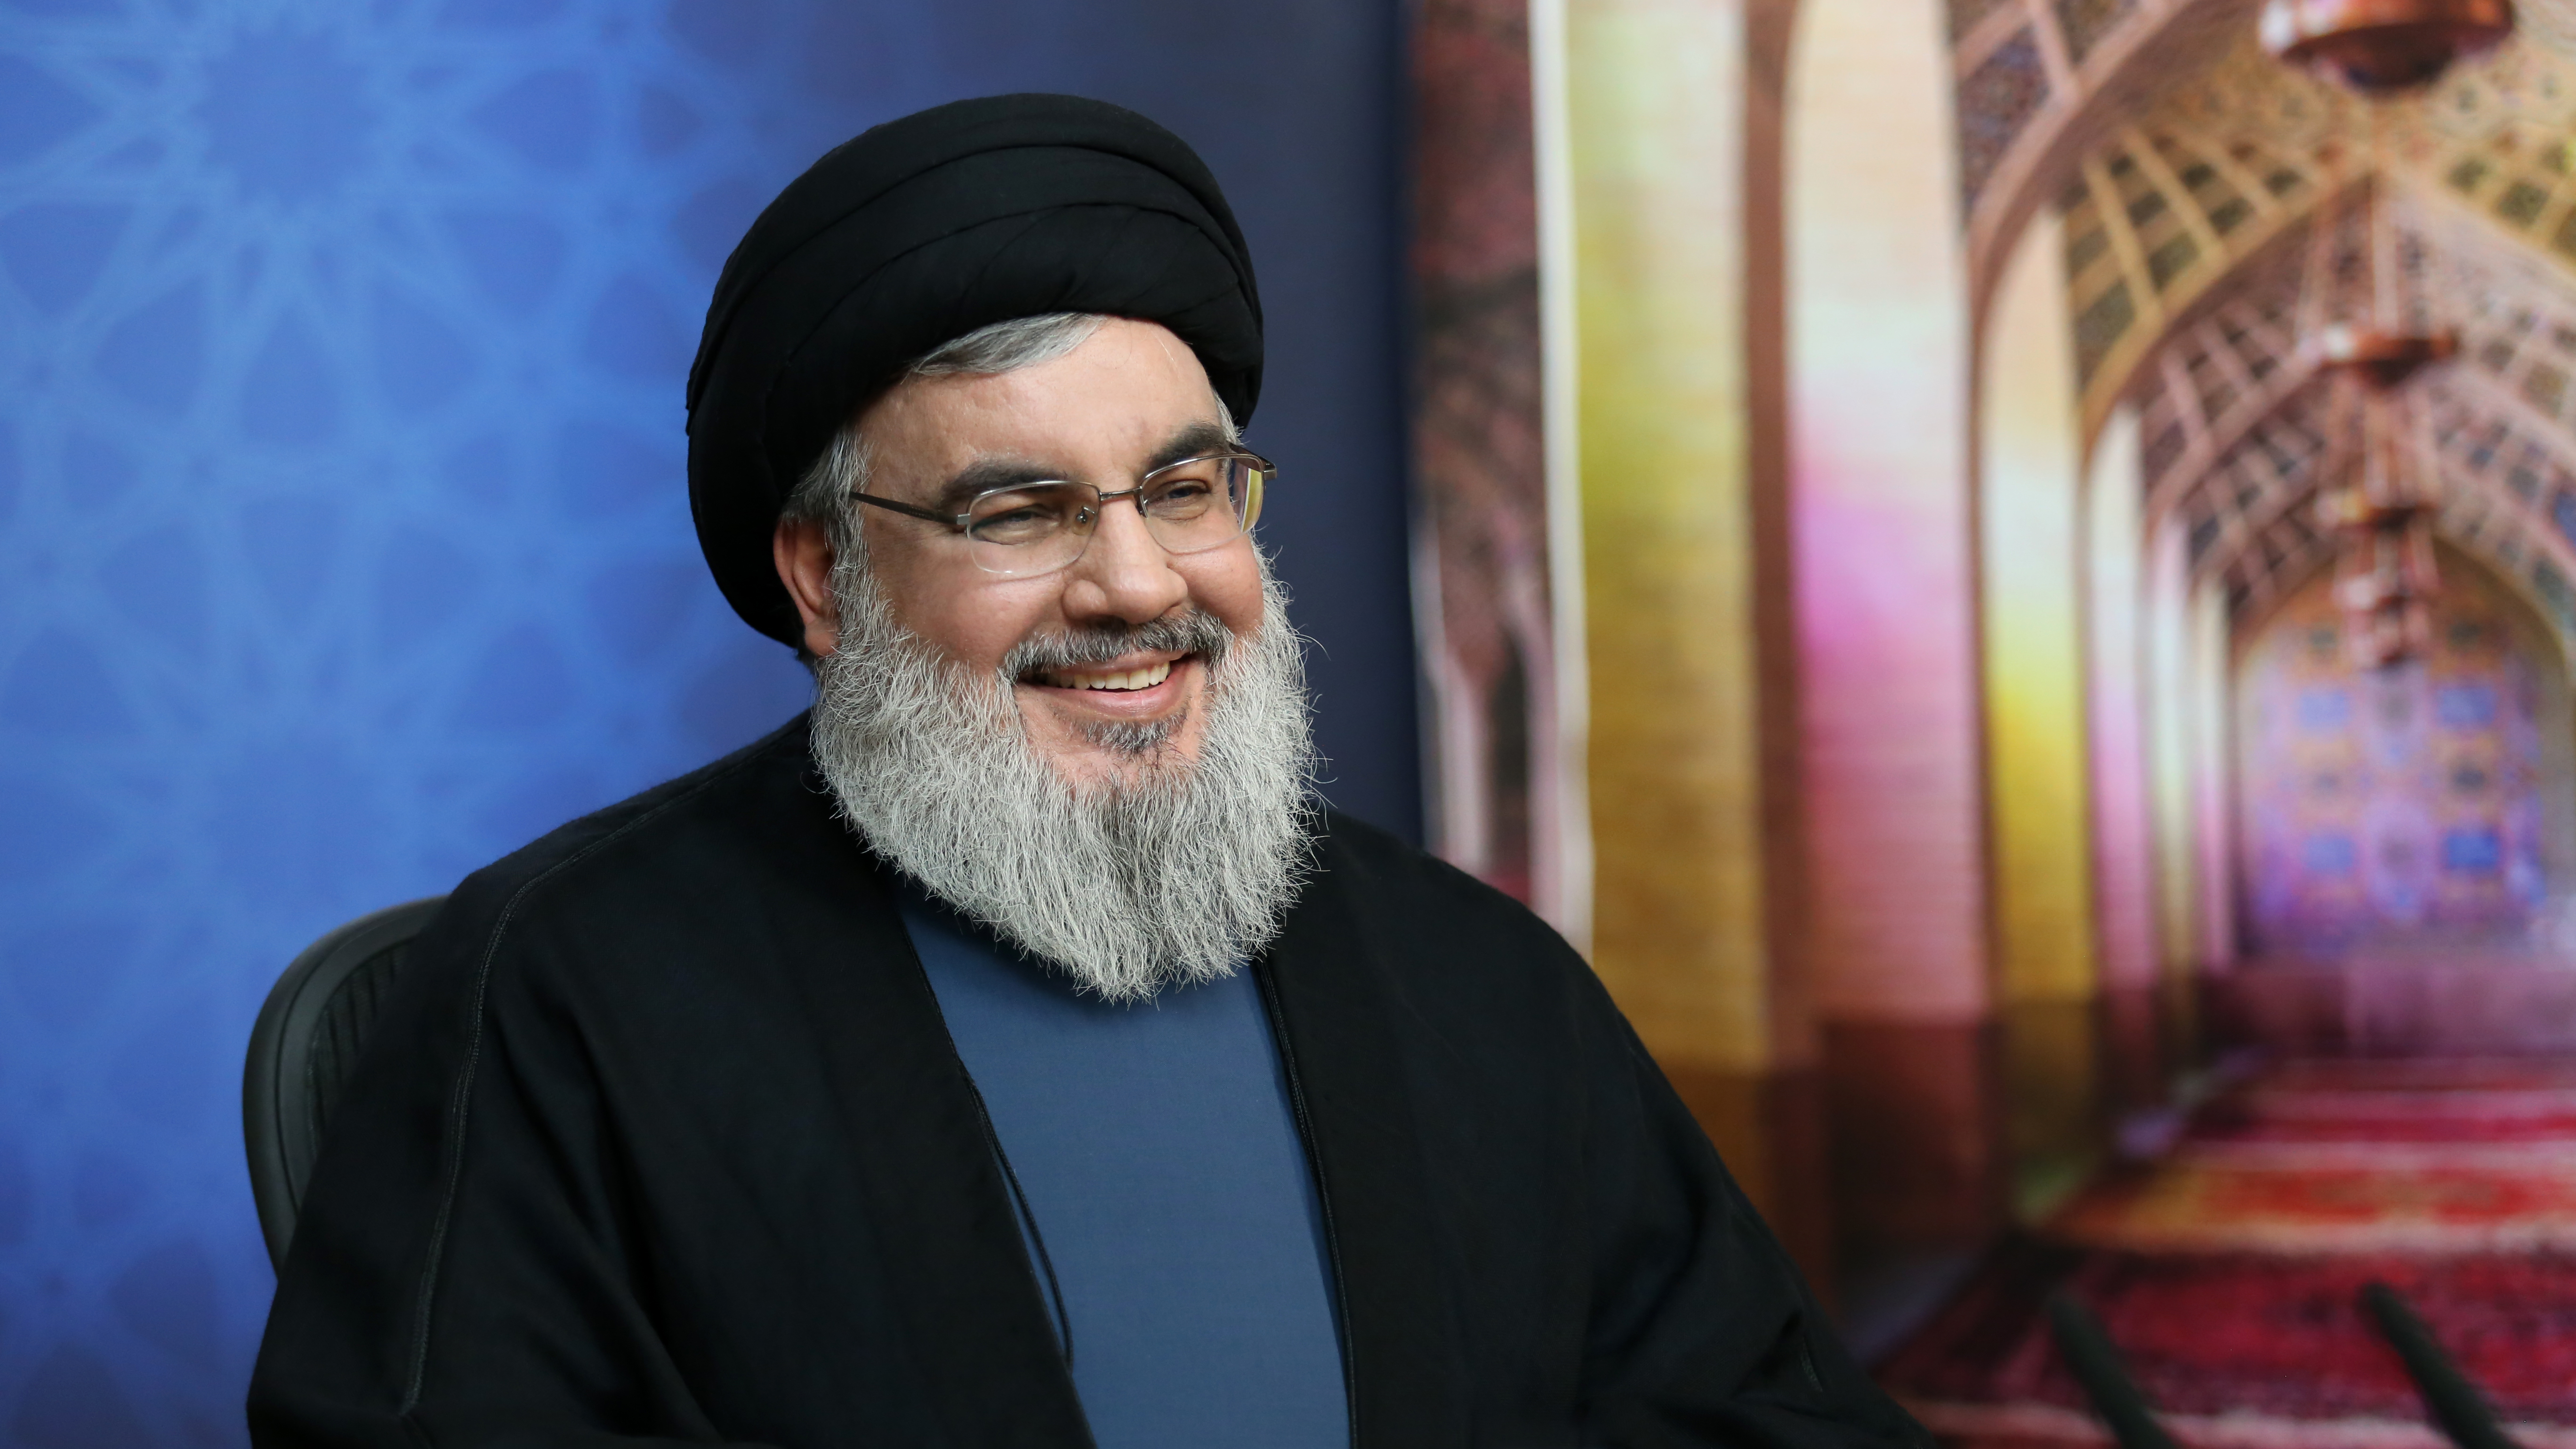 Hezbollah Secretary General His Eminence Sayyed Hassan Nasrallah thanks once again all government officials, the concerned ministries and all people serving Lebanon during the Coronavirus pandemic